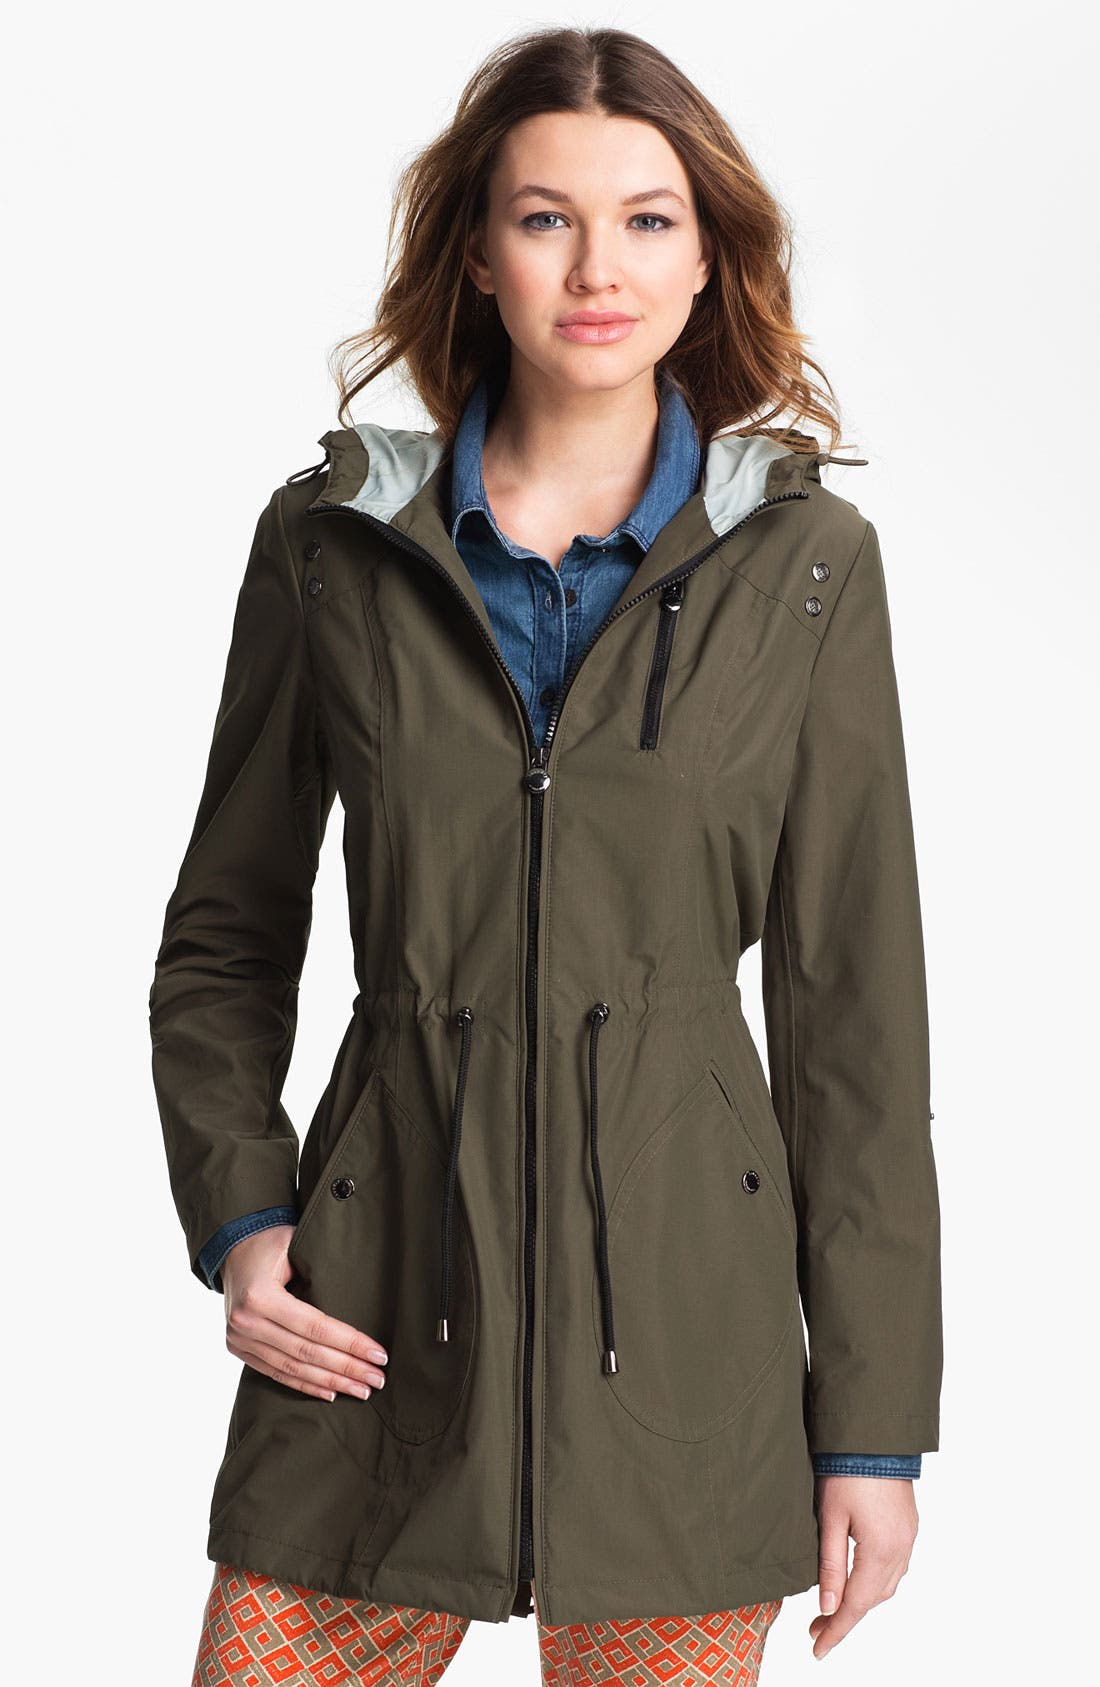 Main Image - Laundry by Shelli Segal Packable Water Repellent Anorak